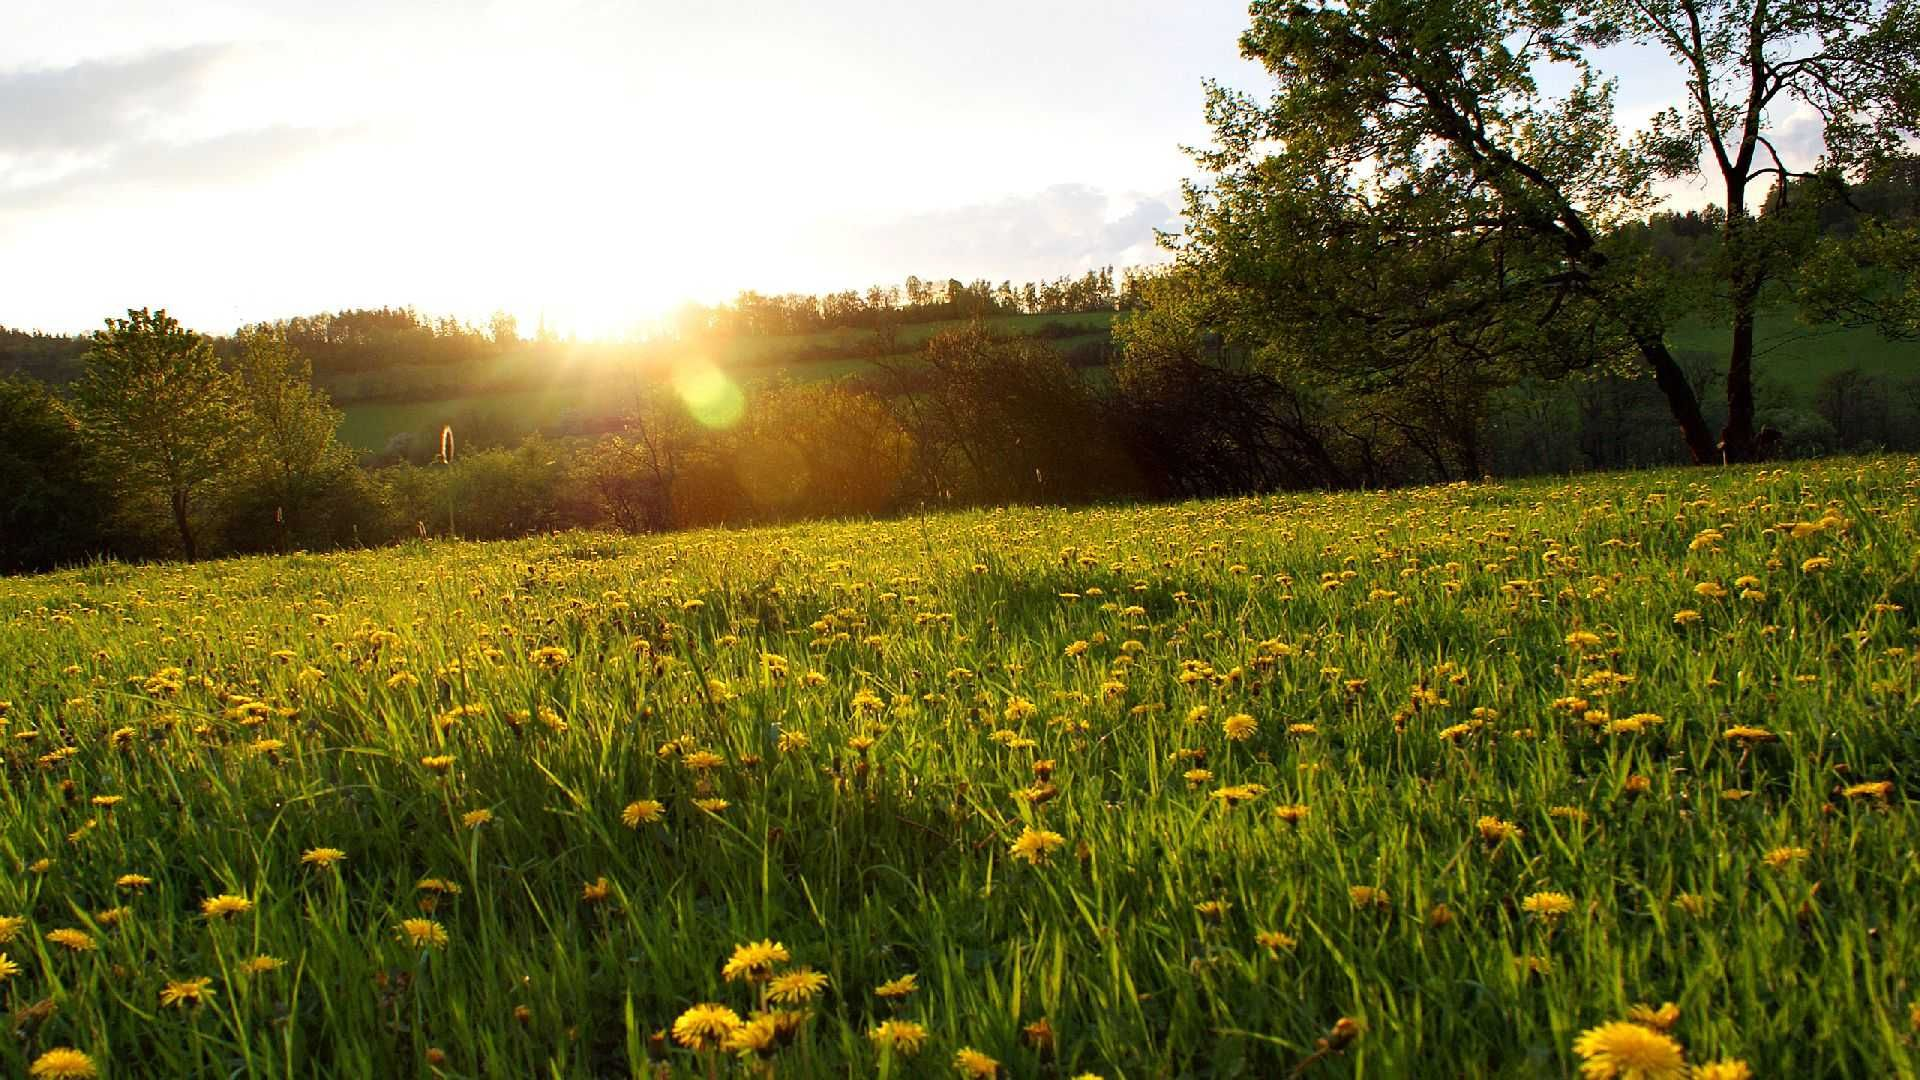 Meadow download free wallpapers for pc in hd